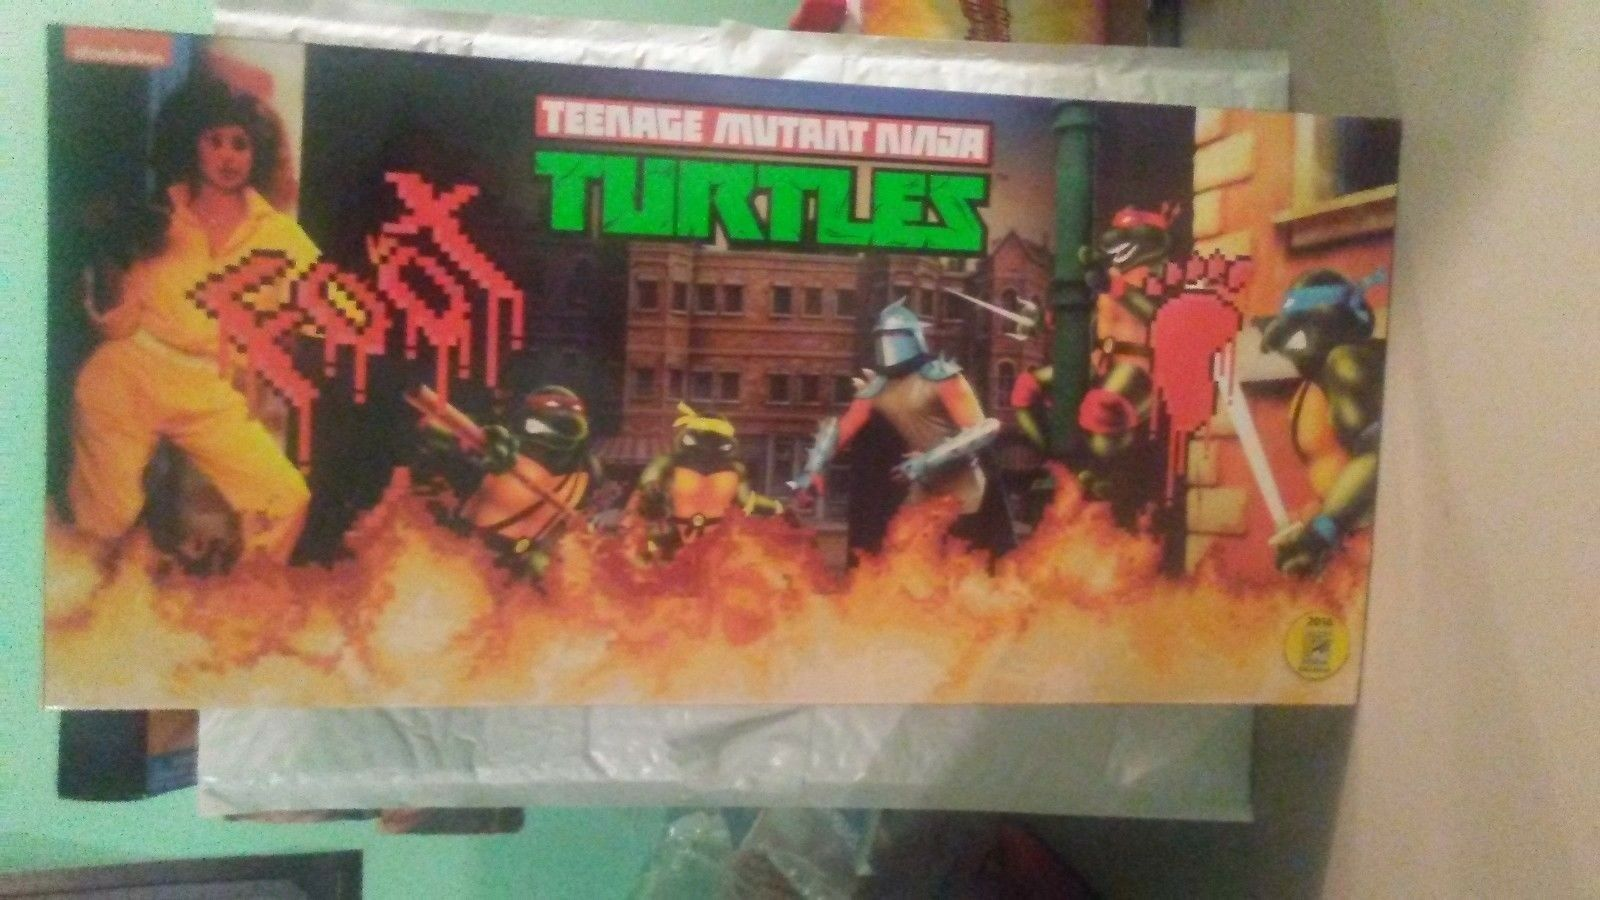 NECA TEENAGE MUTANT NINJA TURTLES ARCADE GAME FOOT CLAN ACTION FIGURE SDCC